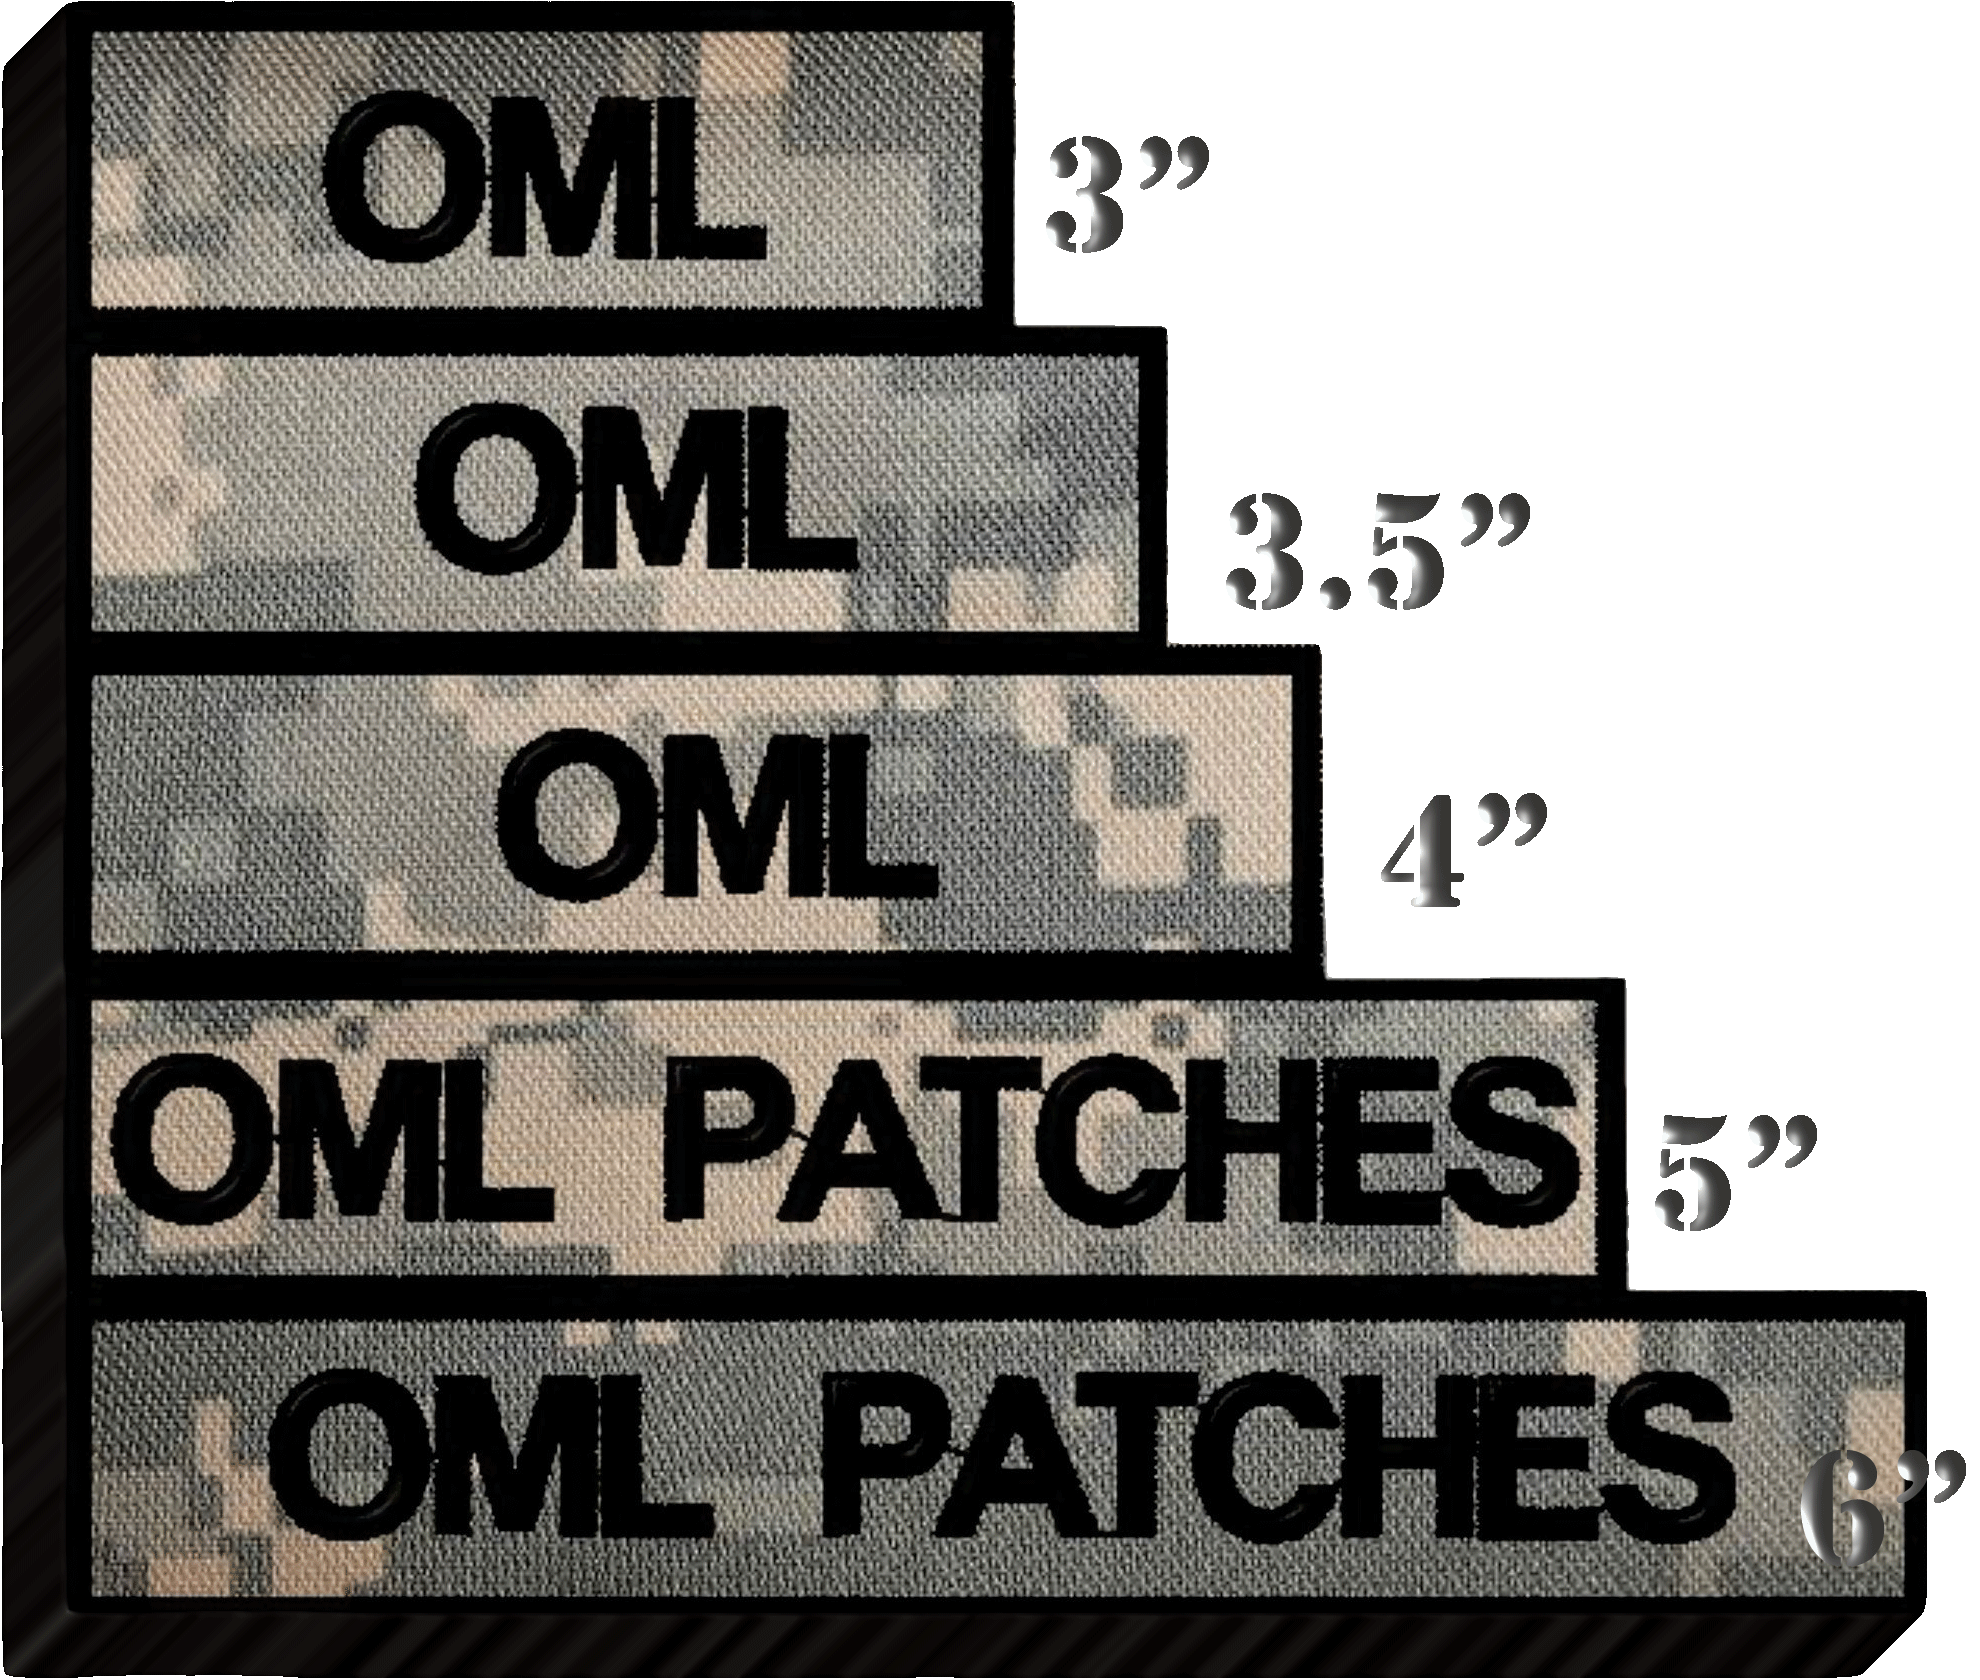 lettering on patches, scrolls and tabs